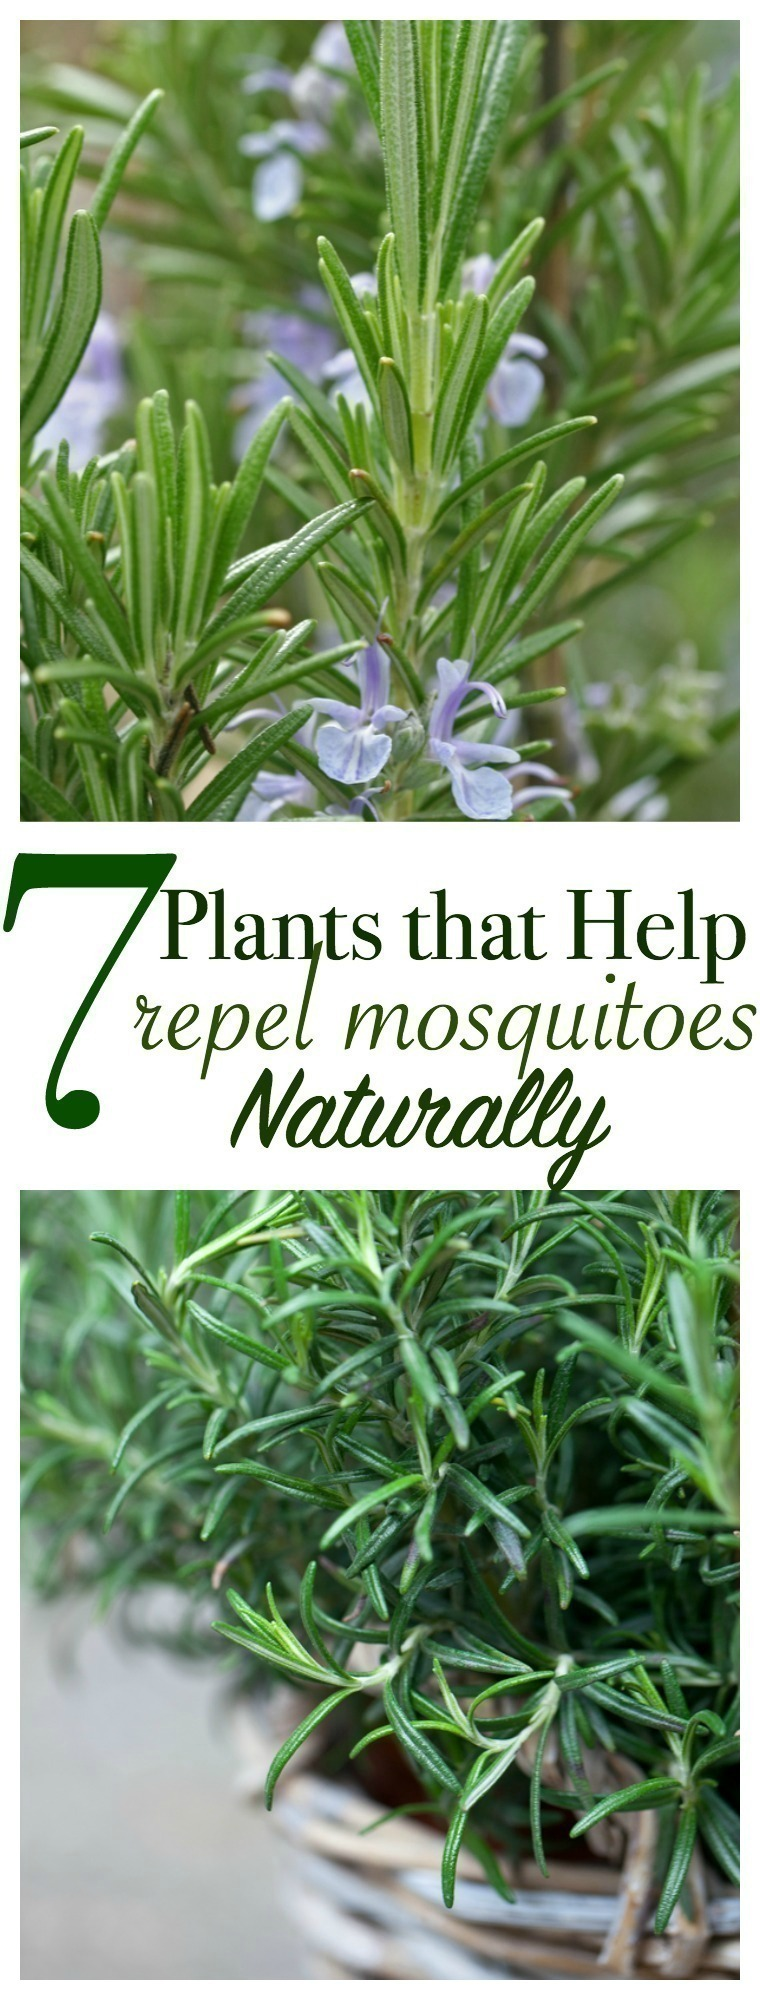 Grow a garden full of your own natural pest control with these plants that repel mosquitoes naturally. Here are 7 mosquito-repelling plants that you need in your backyard ASAP.